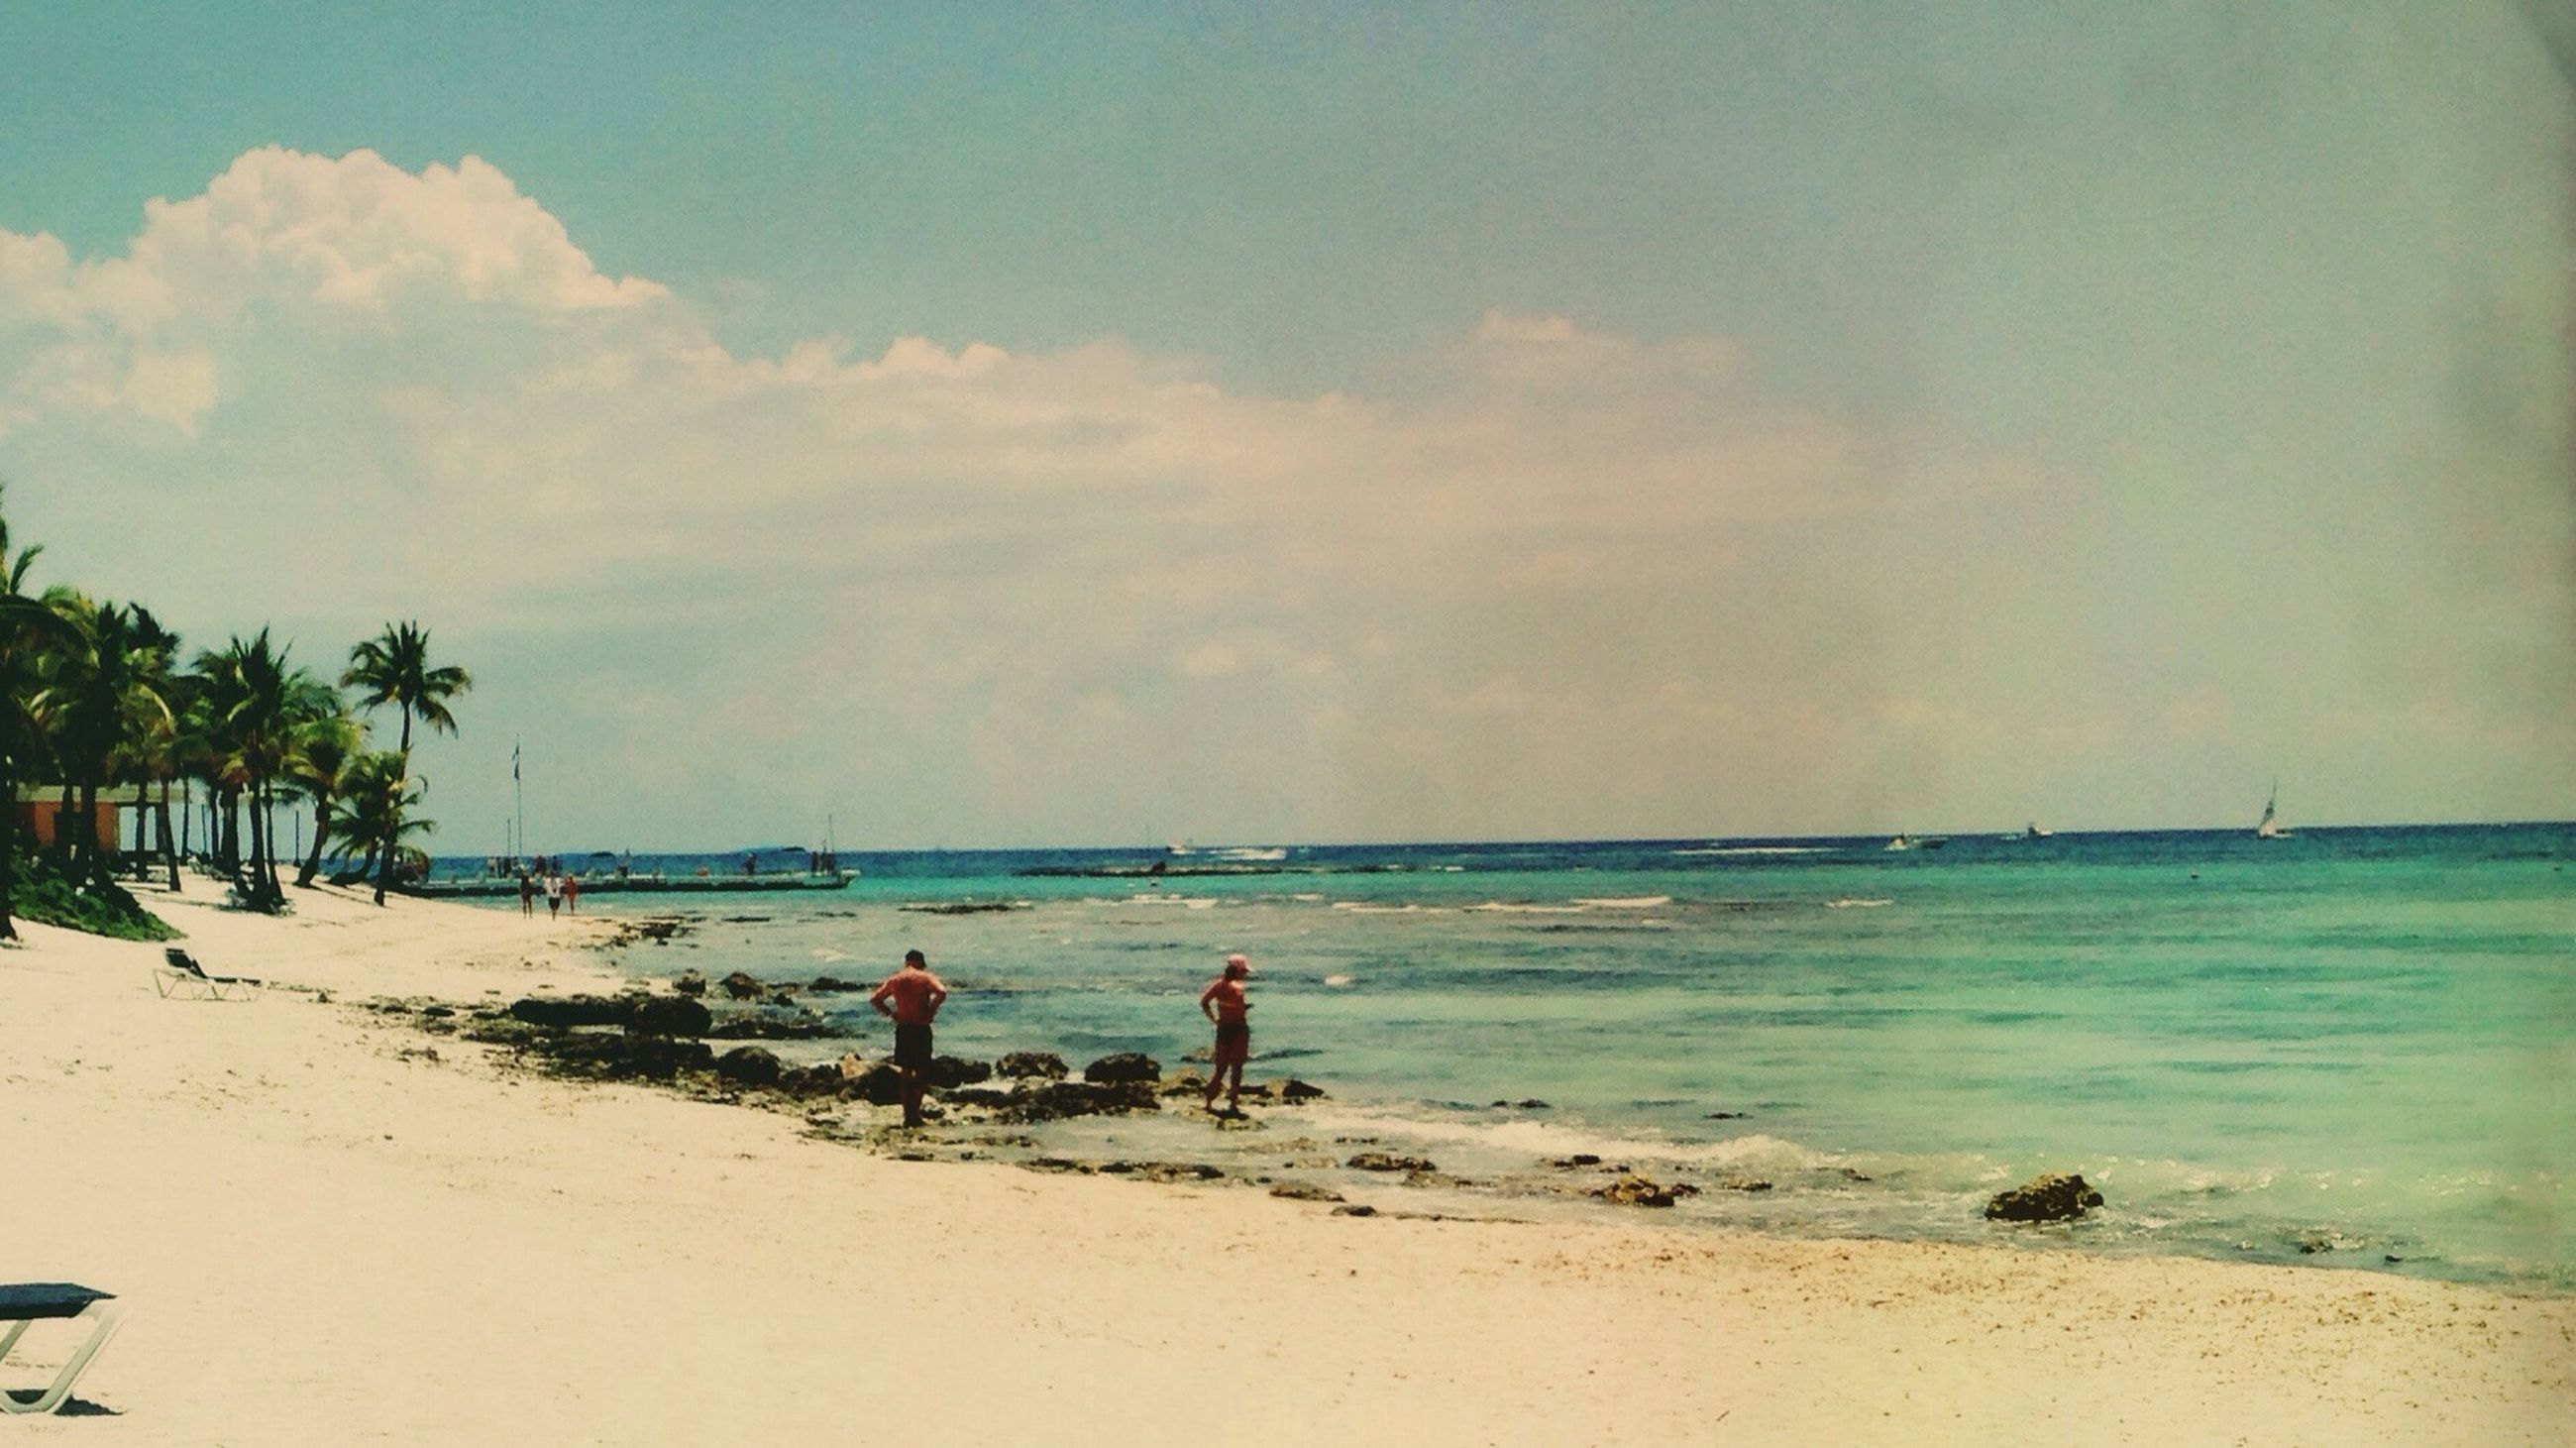 beach, sea, sand, shore, water, horizon over water, sky, vacations, leisure activity, scenics, lifestyles, beauty in nature, cloud - sky, tranquil scene, tranquility, large group of people, nature, coastline, incidental people